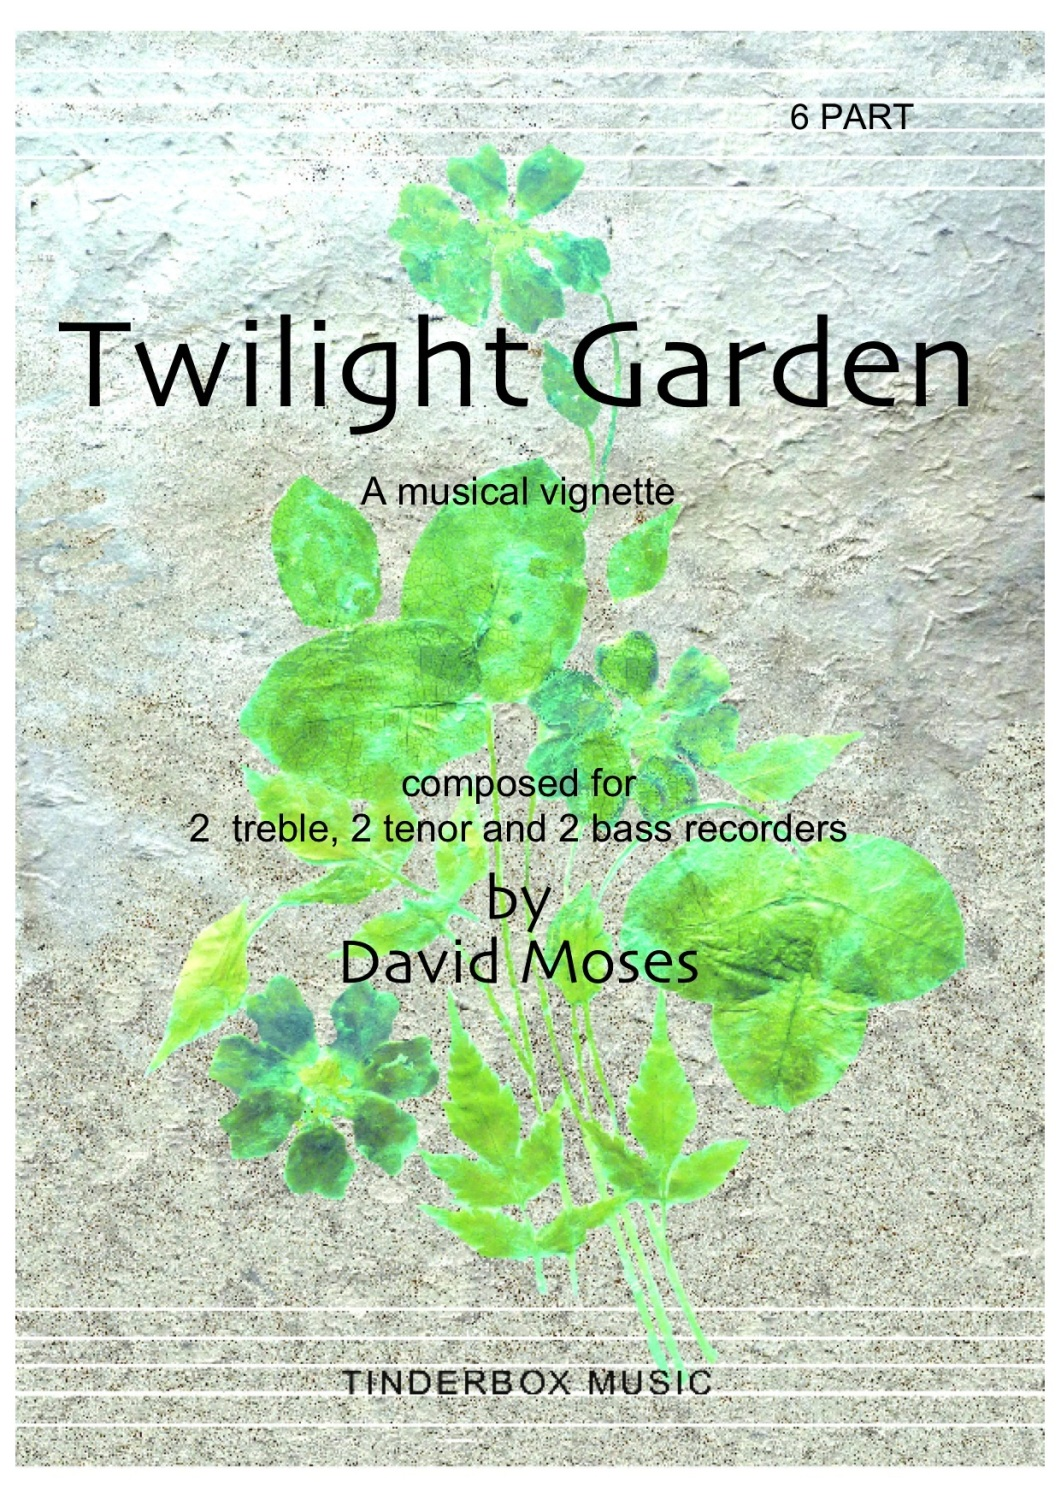 Twilight Garden       6 part